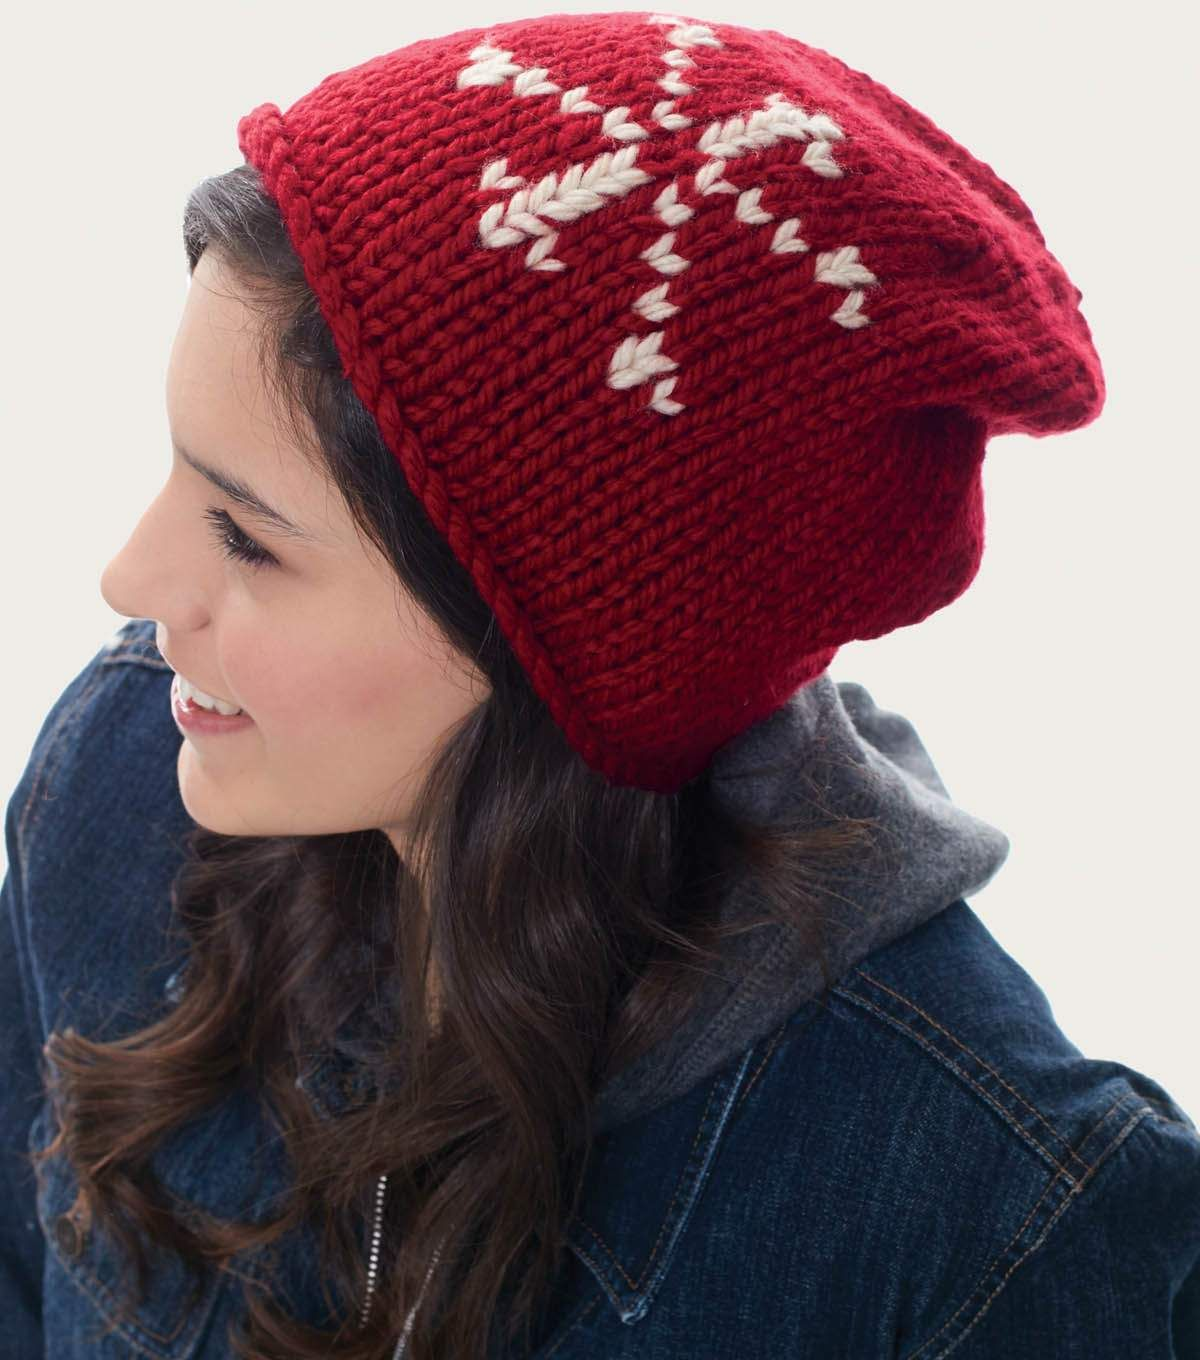 How To Make A Snowflake Hat | free Knitting patterns | Pinterest ...